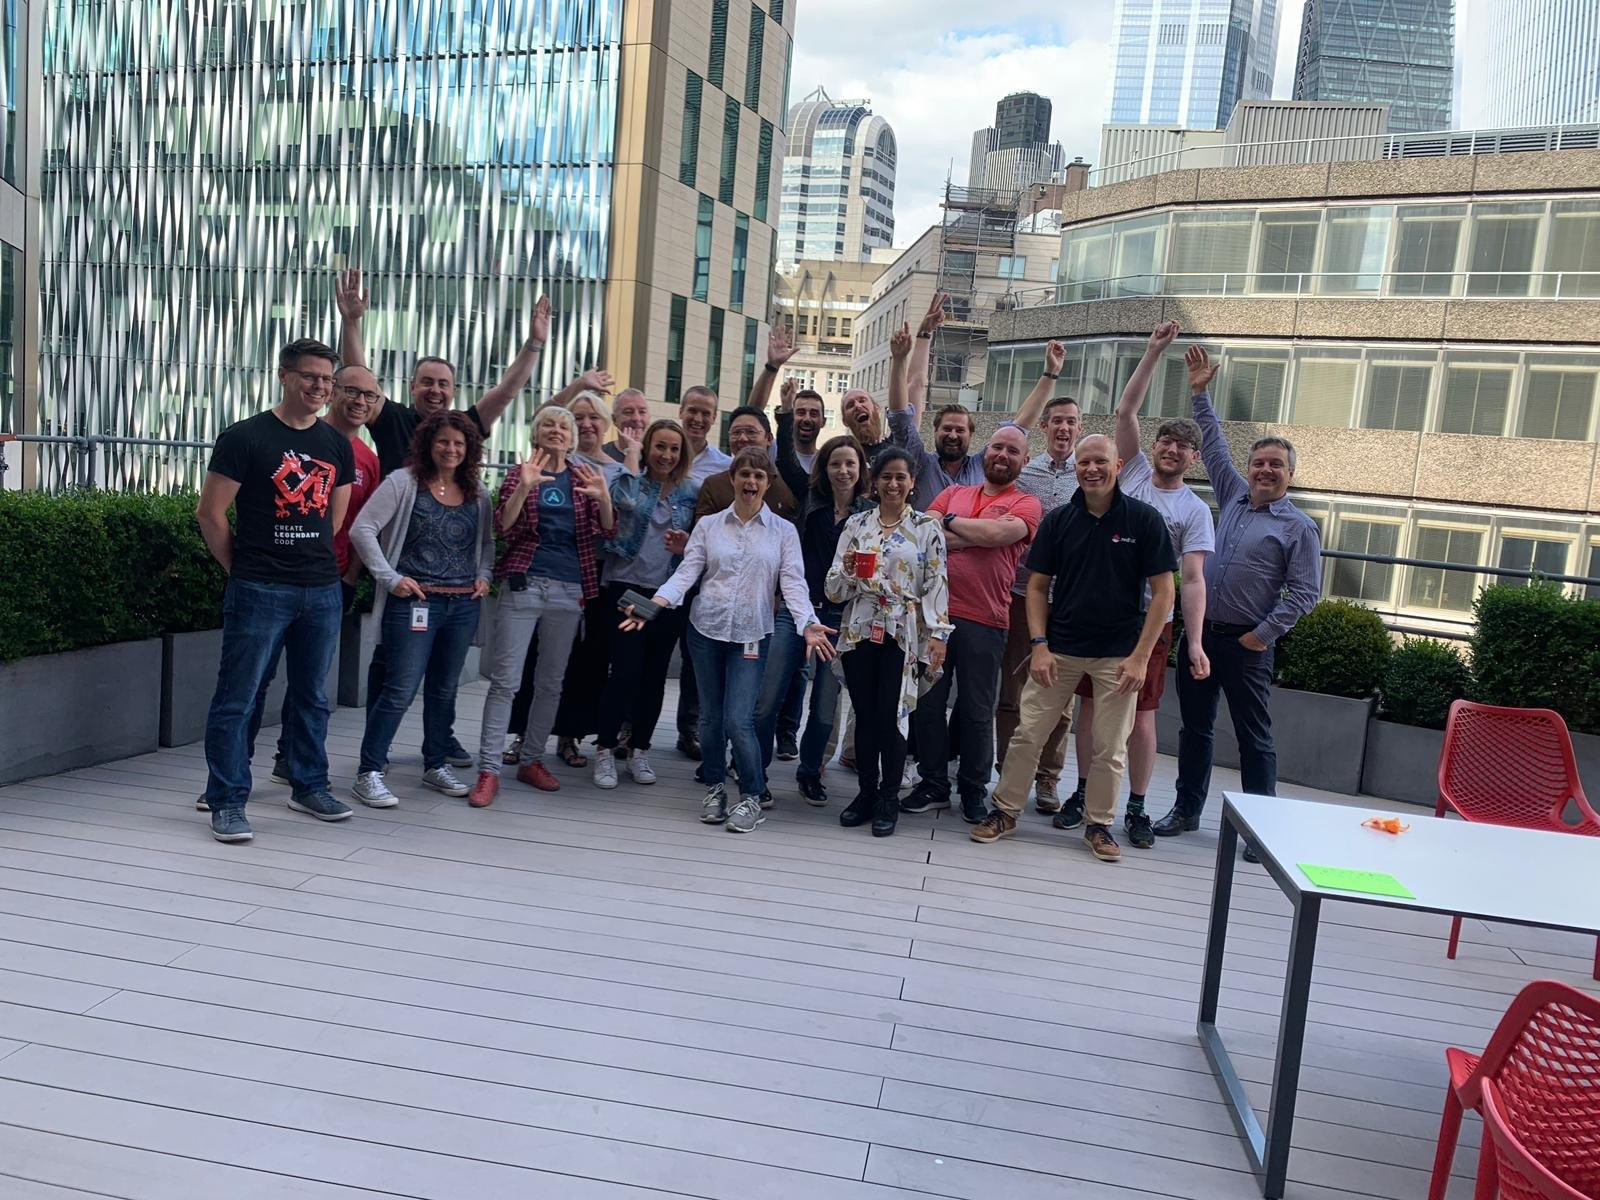 Some of the EMEA Labs Team on the balcony of Red Hat's London Office.